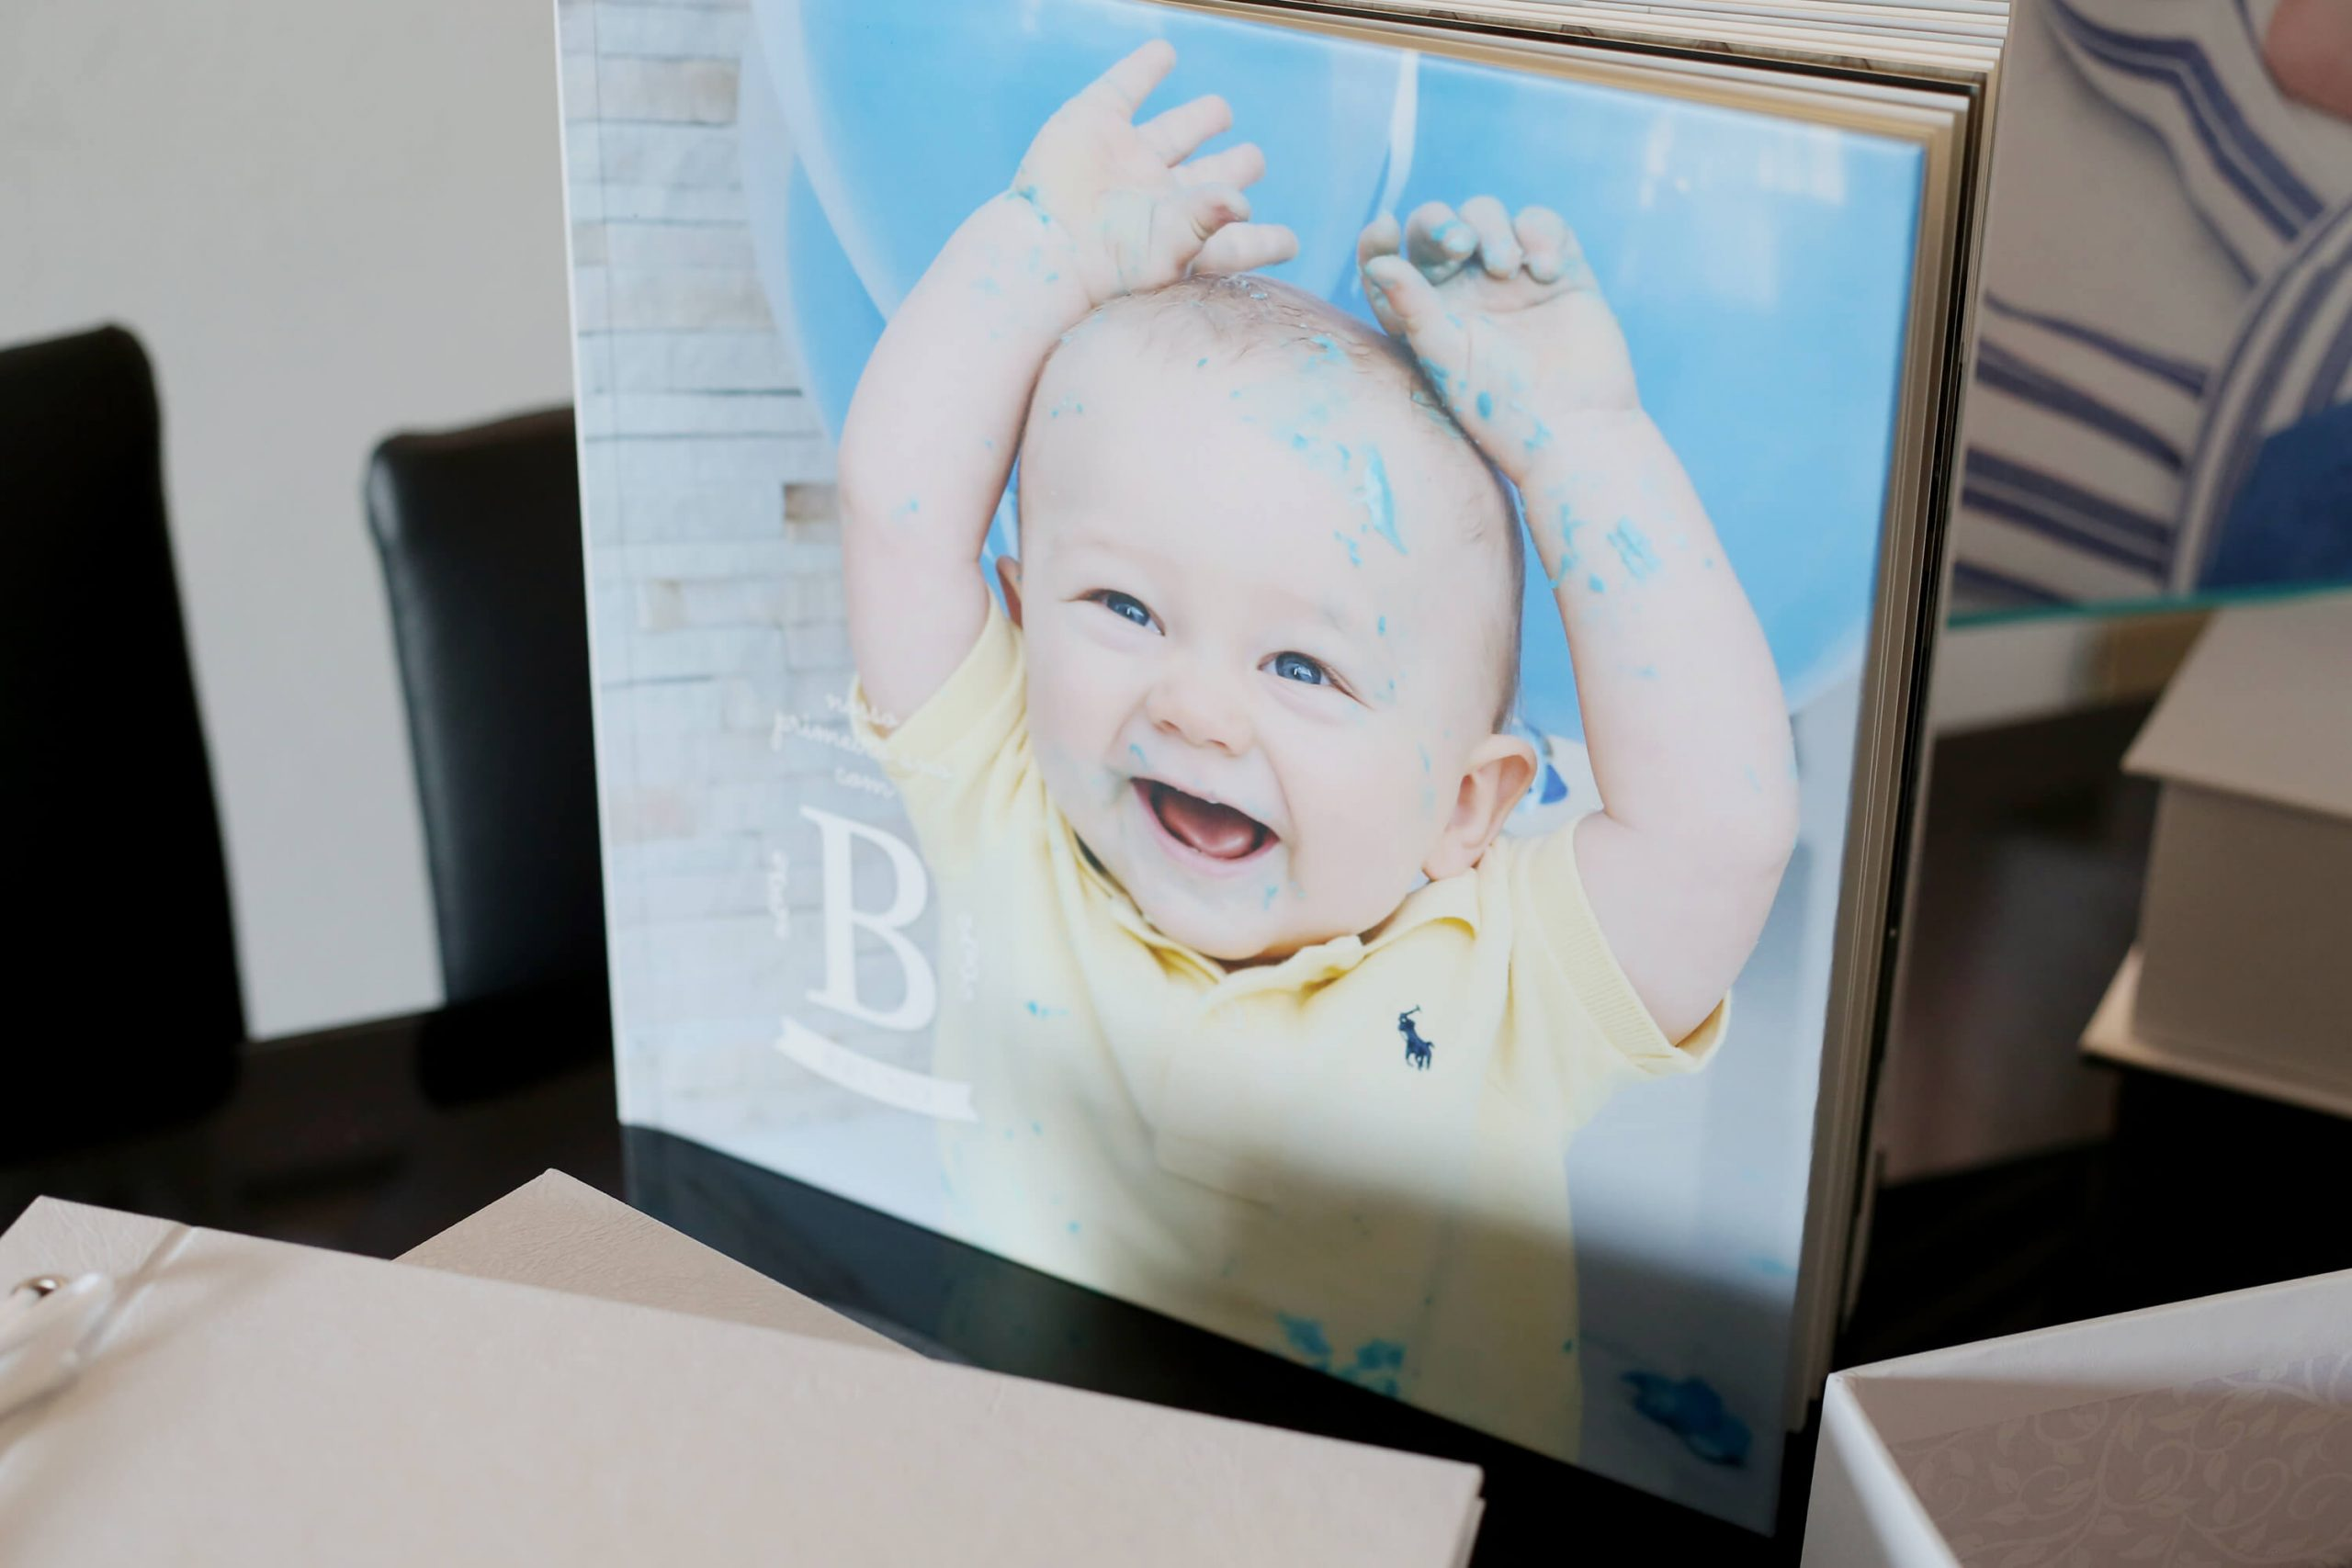 products: image wrap of photobook